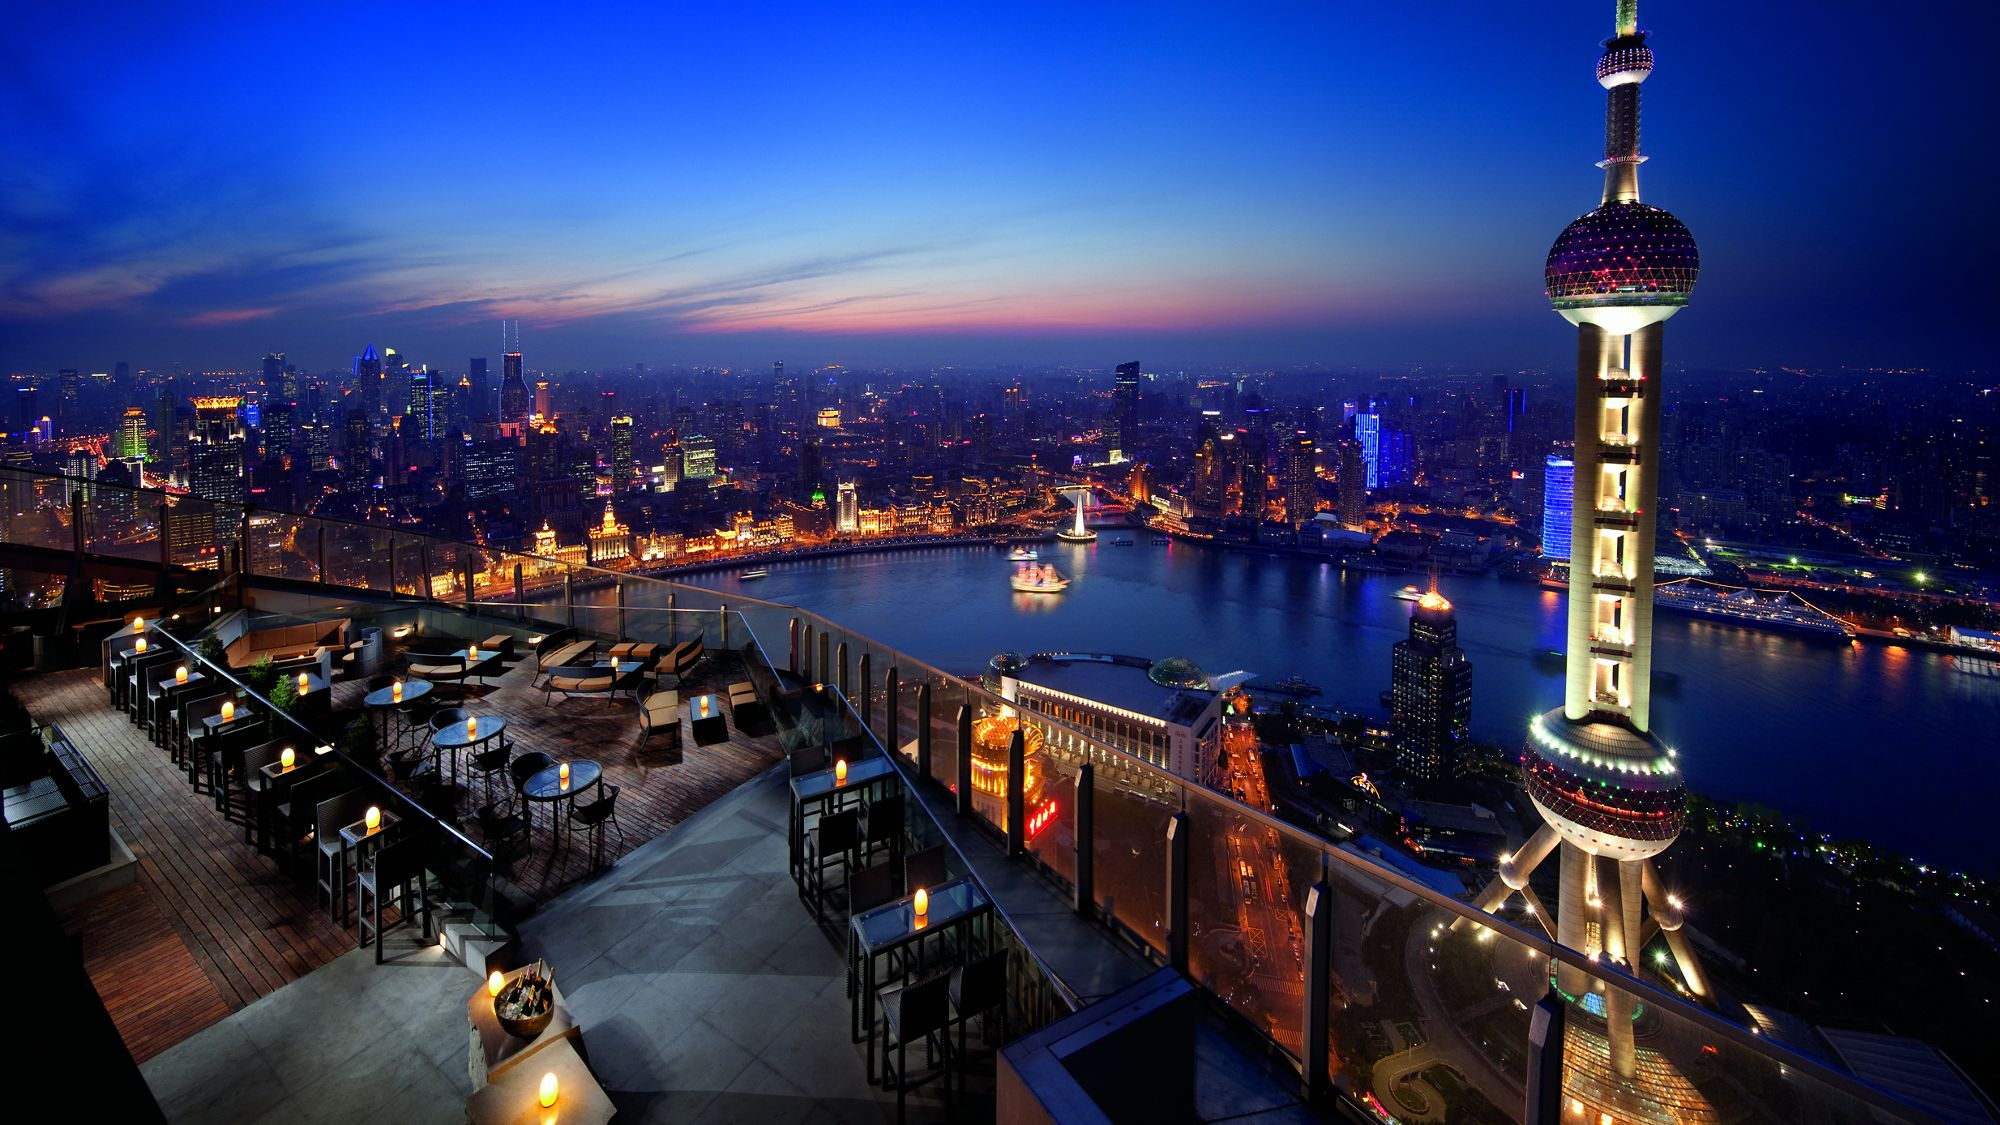 Living the high life: 10 best rooftop bars in Asia